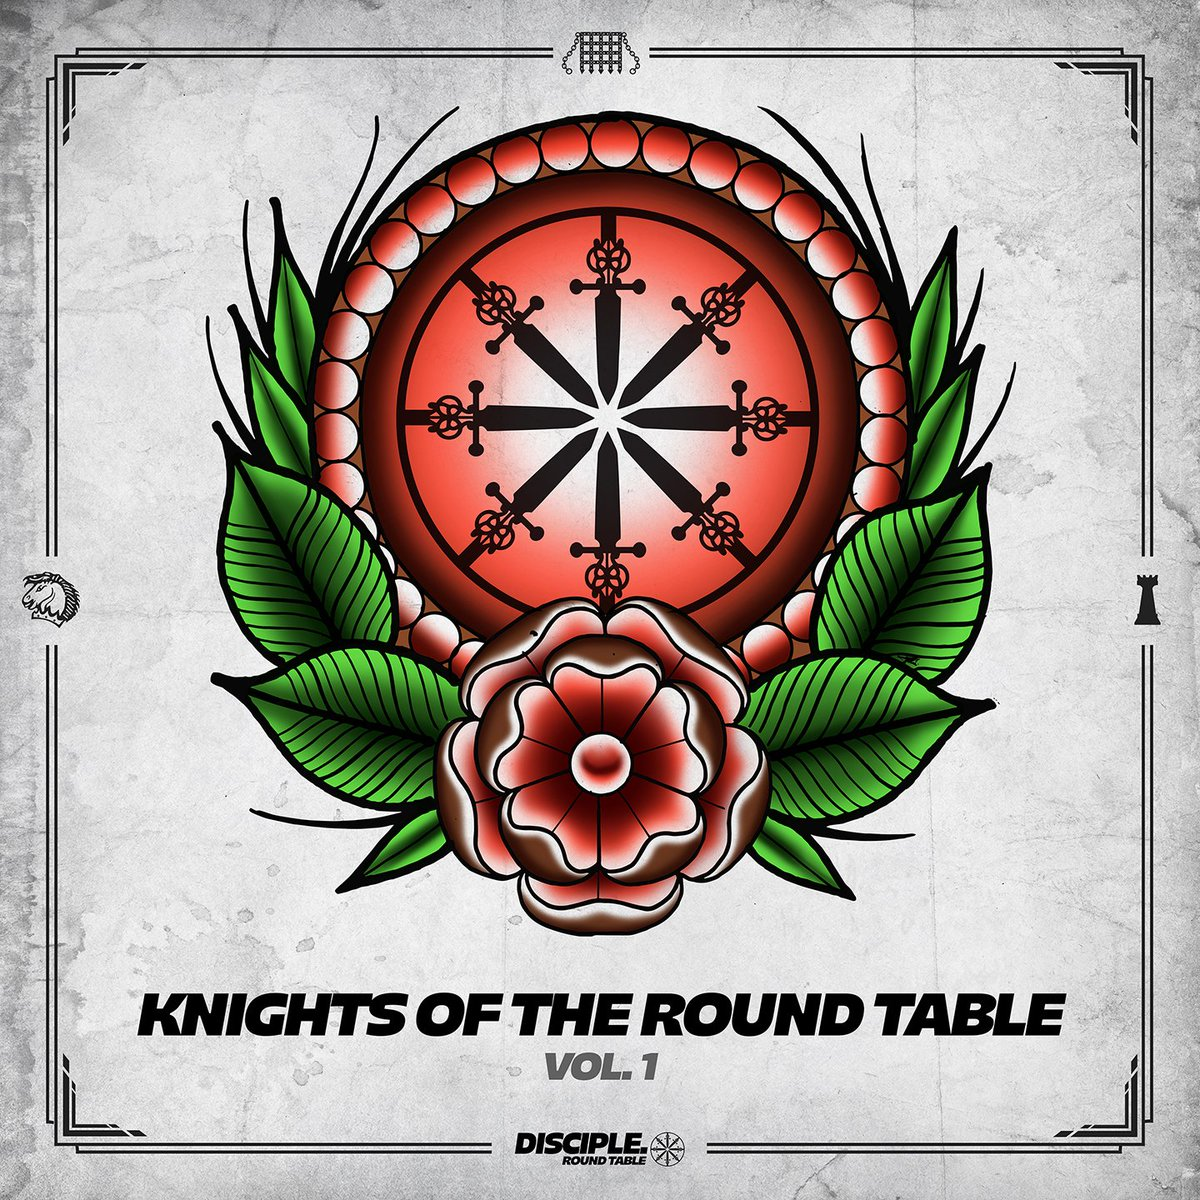 12 Knights Of The Round Table.Disciple On Twitter Knights Of The Round Table Vol 1 Coming